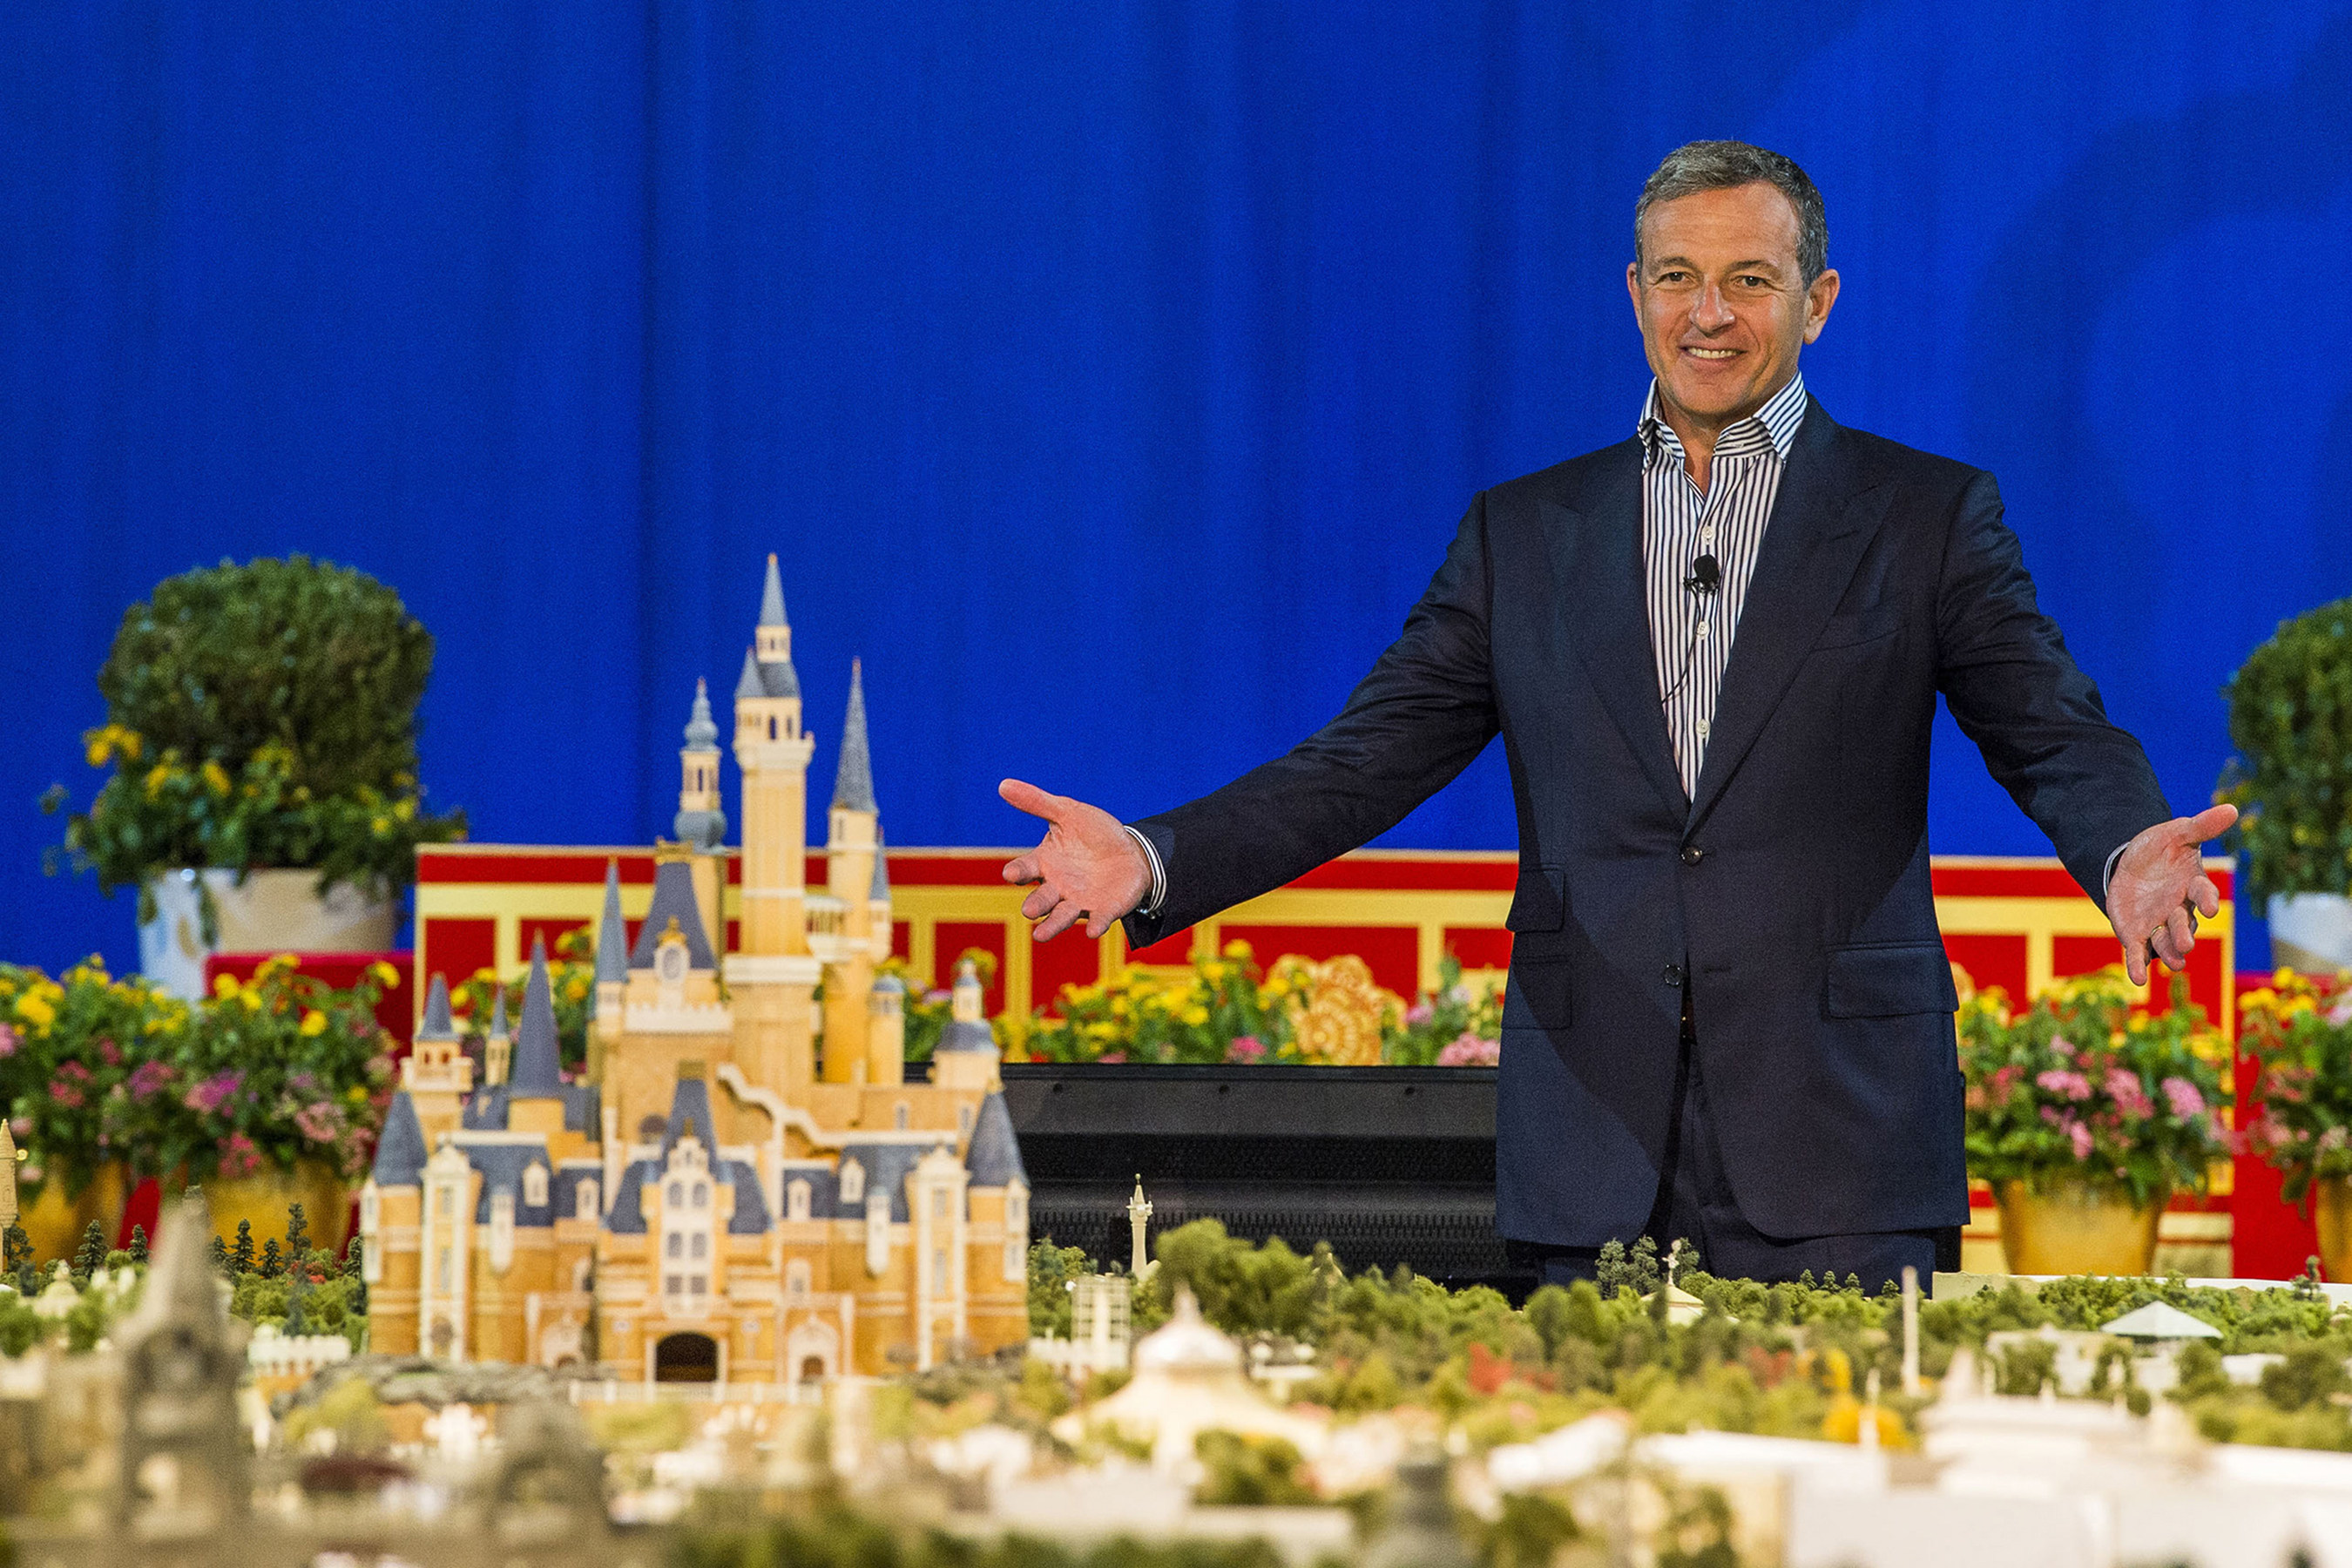 Disney Chairman and CEO Bob Iger revealed a scale model of Shanghai Disneyland and displays showcasing key highlights of unique attractions, entertainment, dining and hotels at a presentation held at the Shanghai Expo Centre.